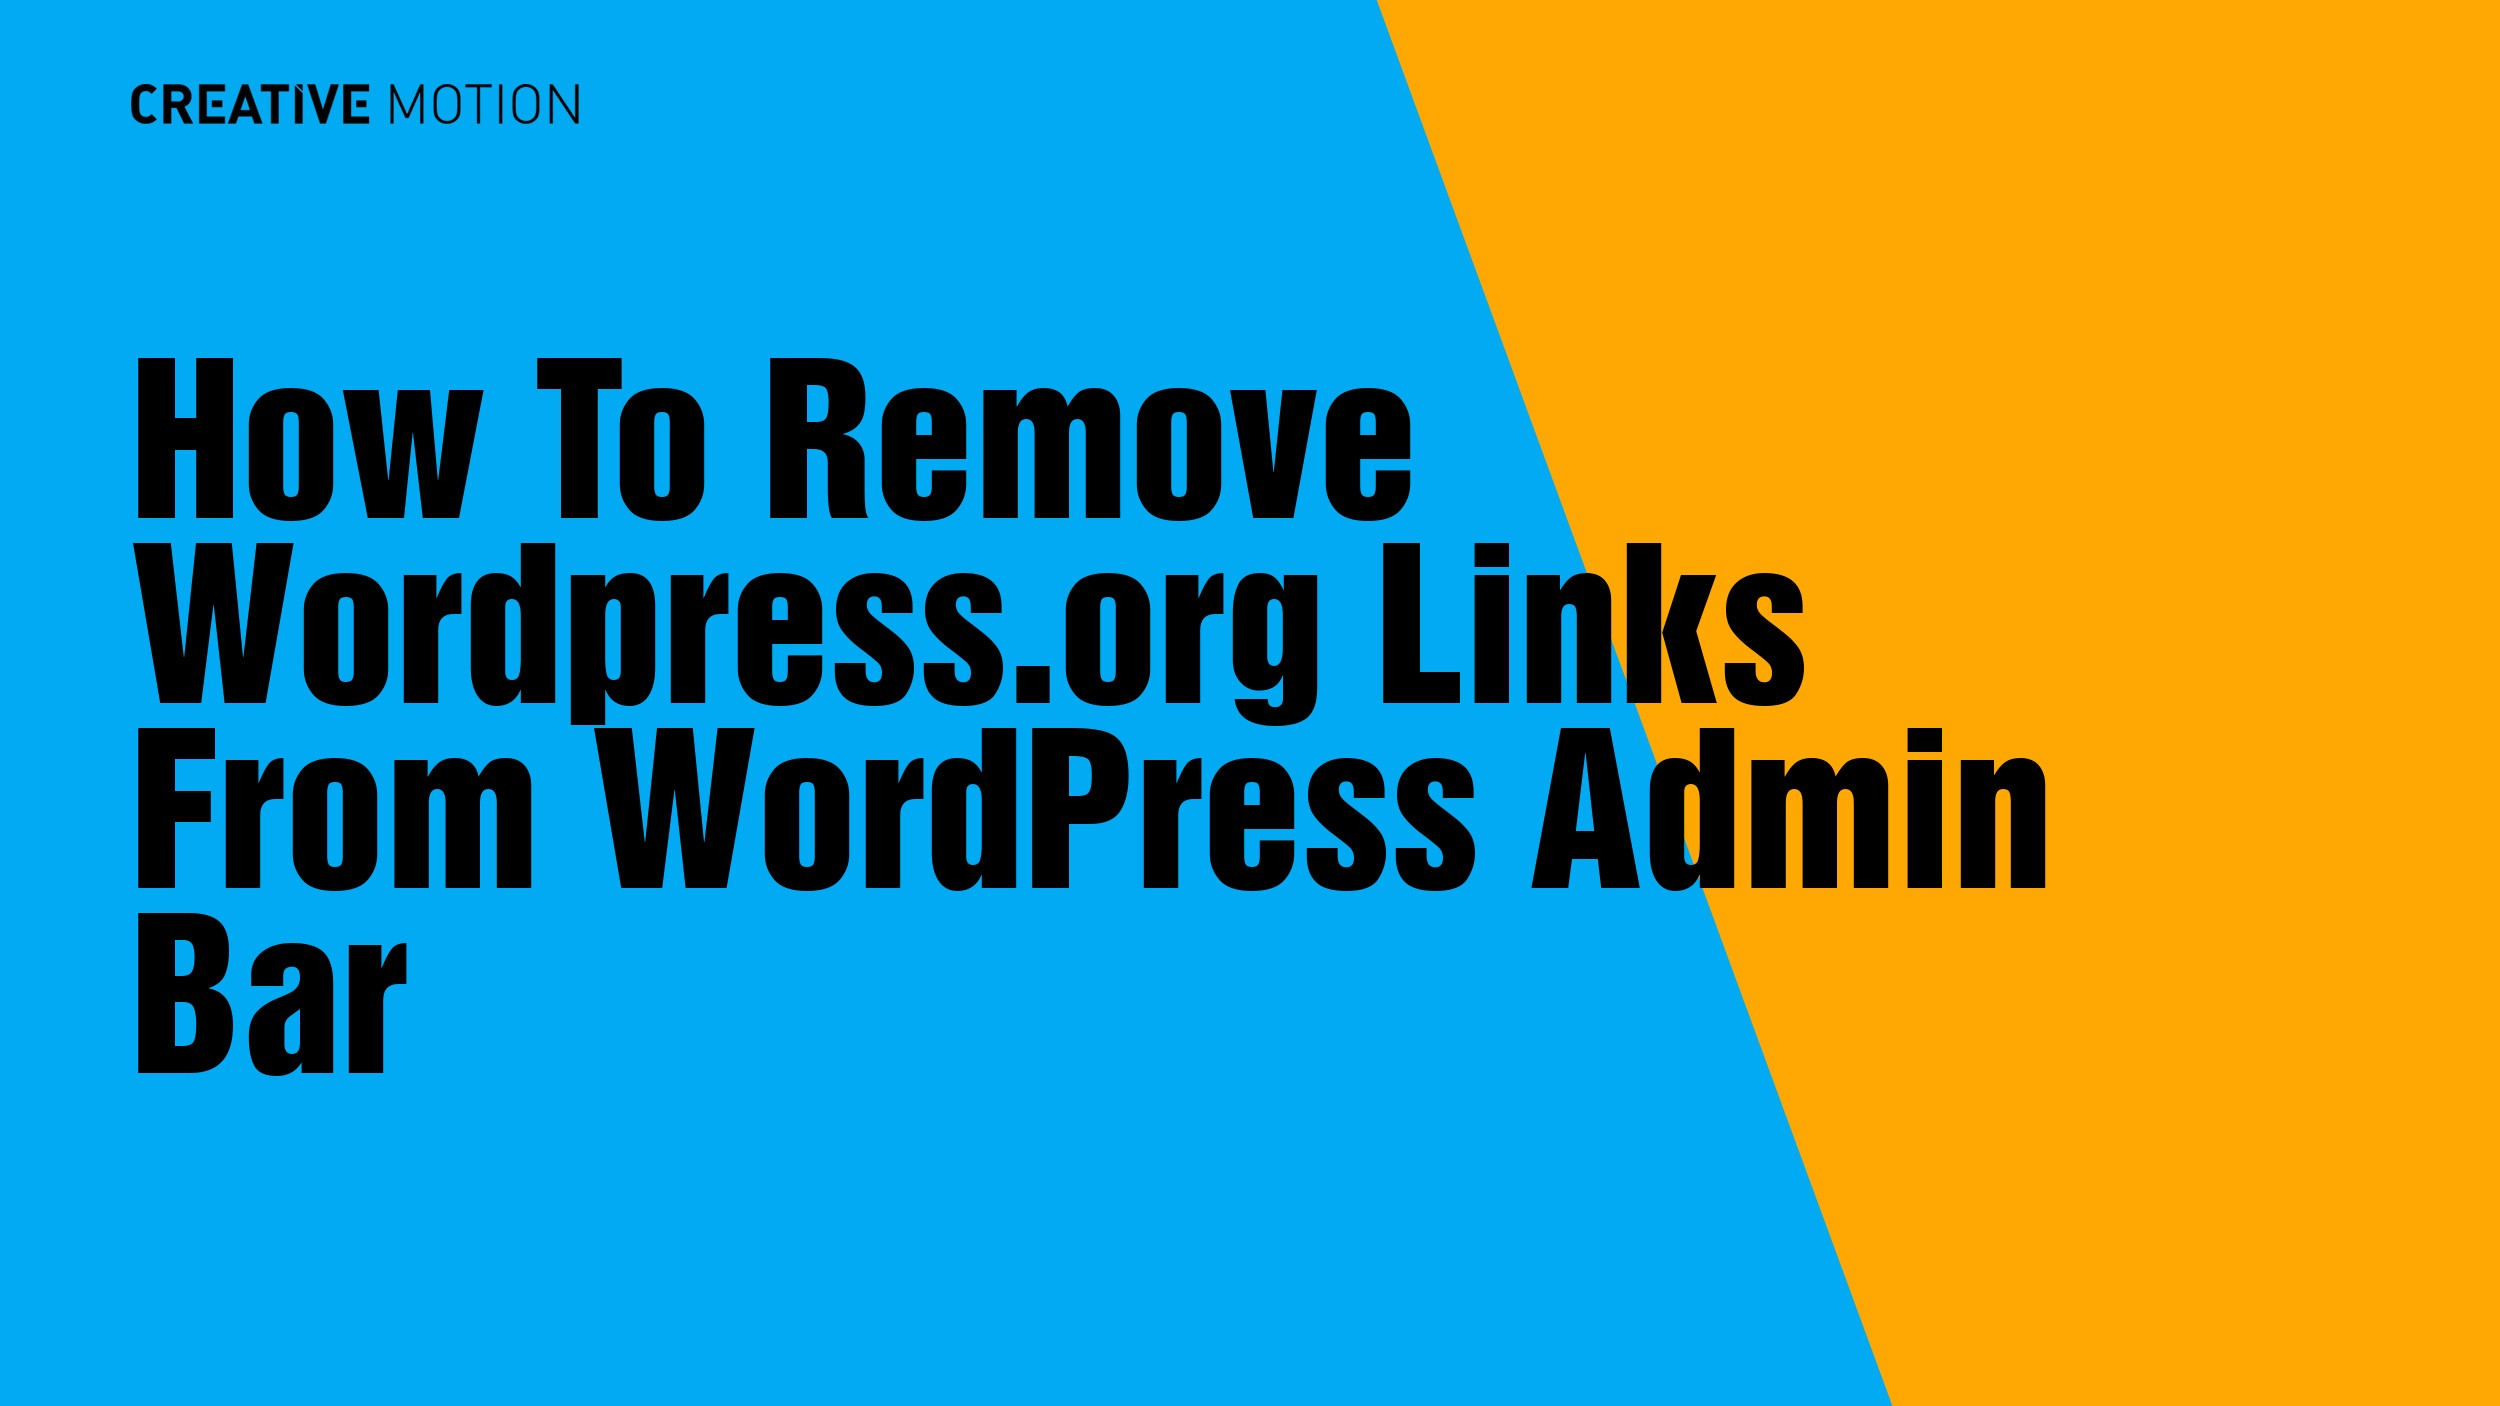 How To Remove WordPress.org Links From WordPress Admin Bar